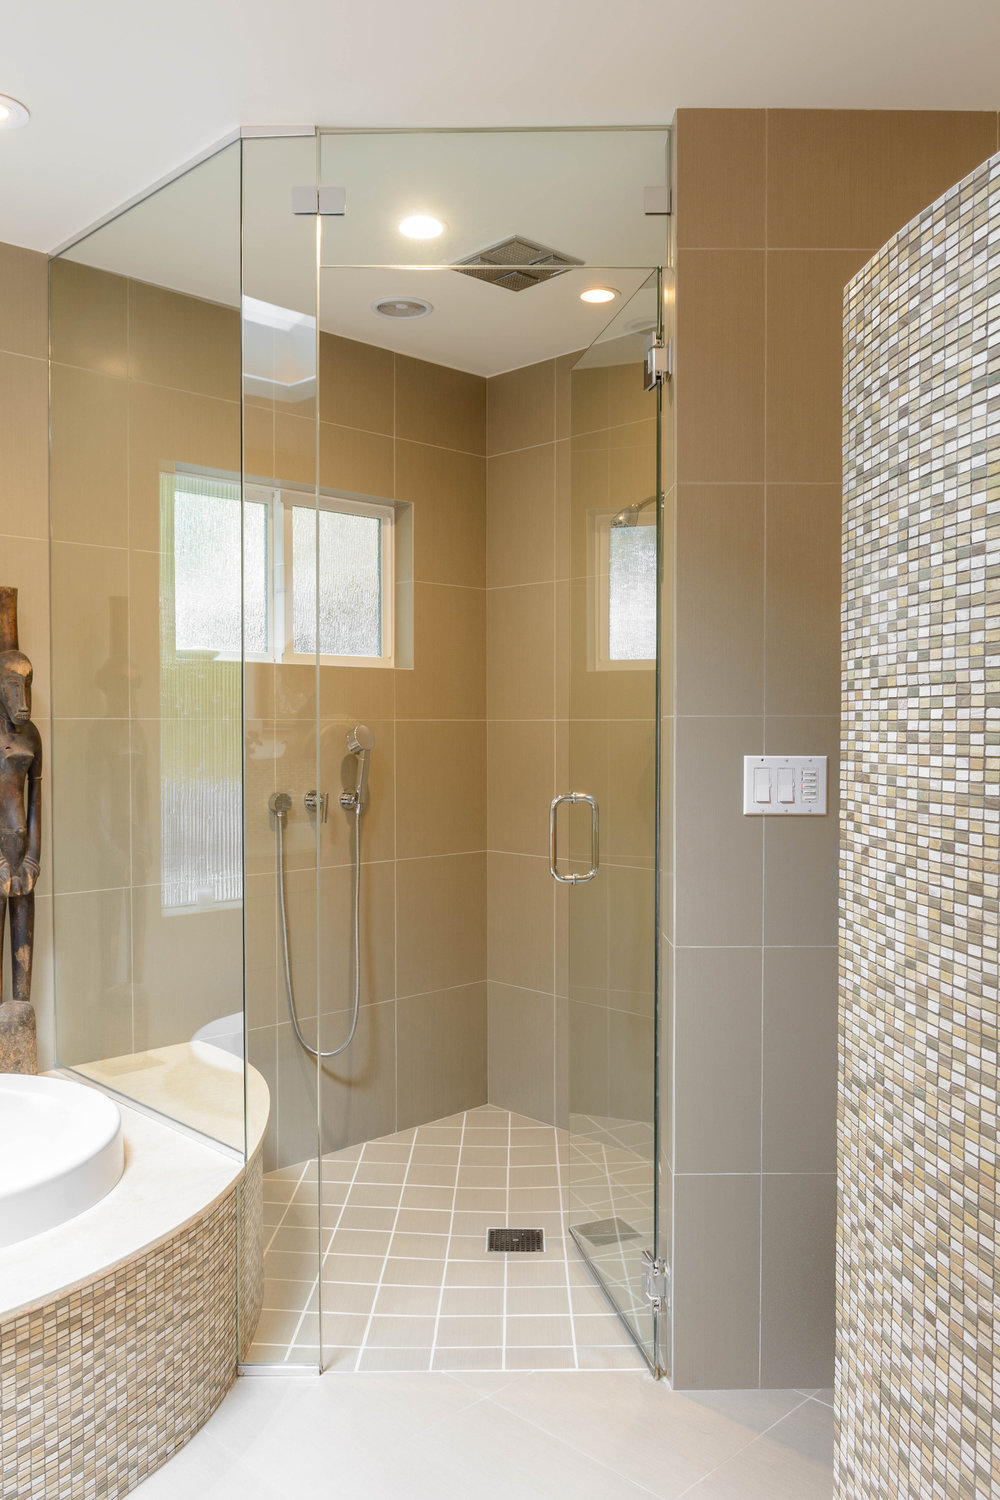 The master bath shower features both rain head and handheld shower fixtures as well as a curbless accessible threshold